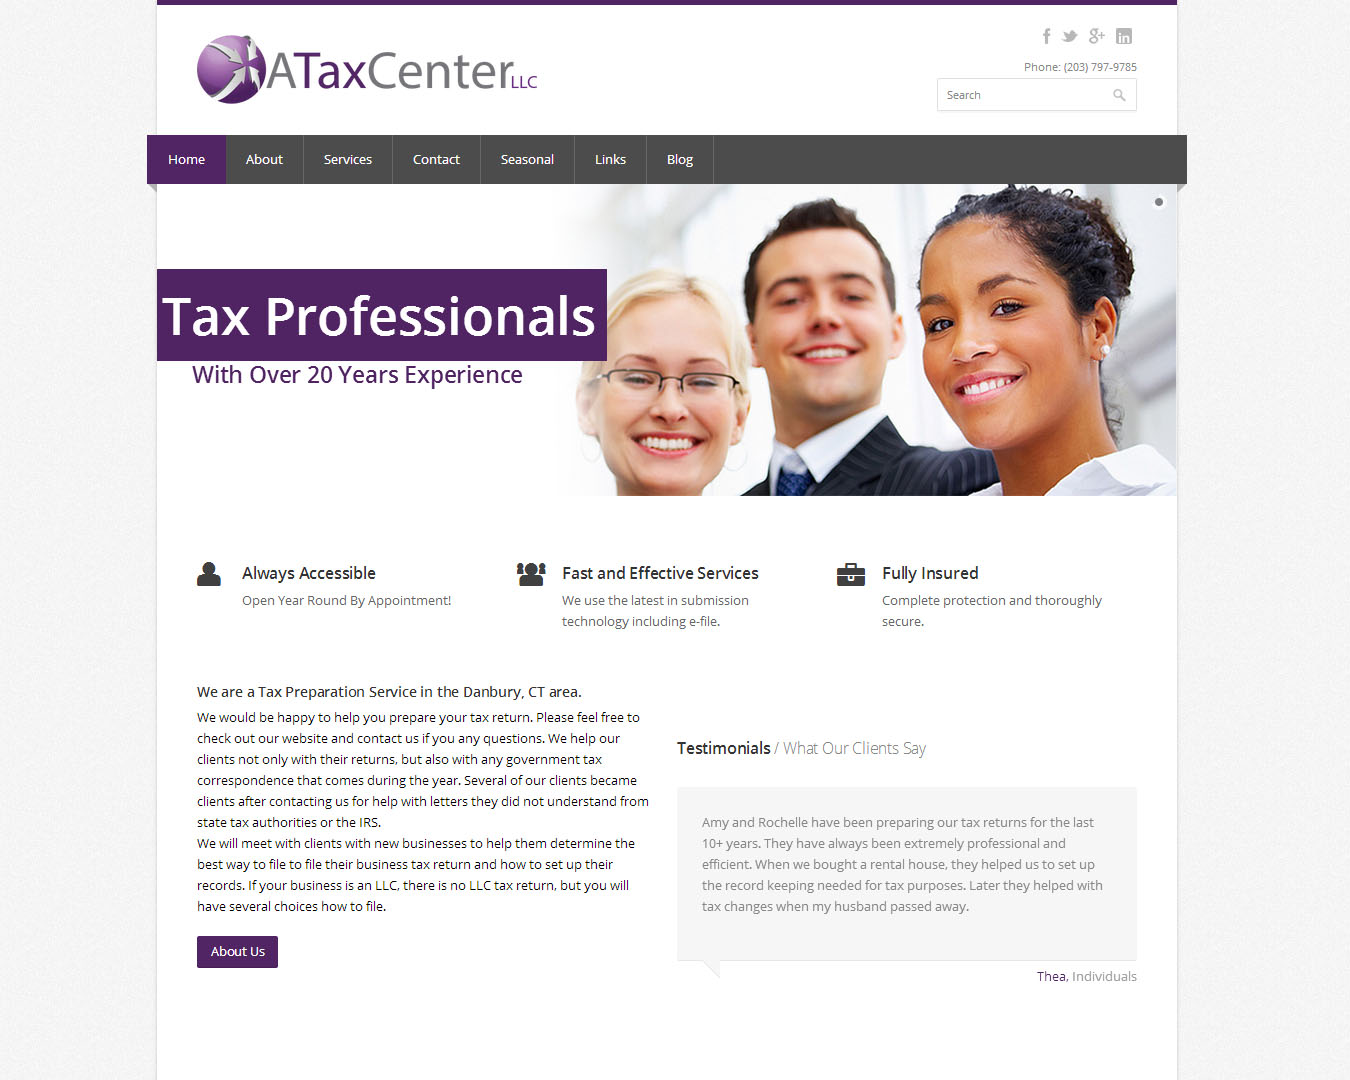 a-tax-center-llc-after